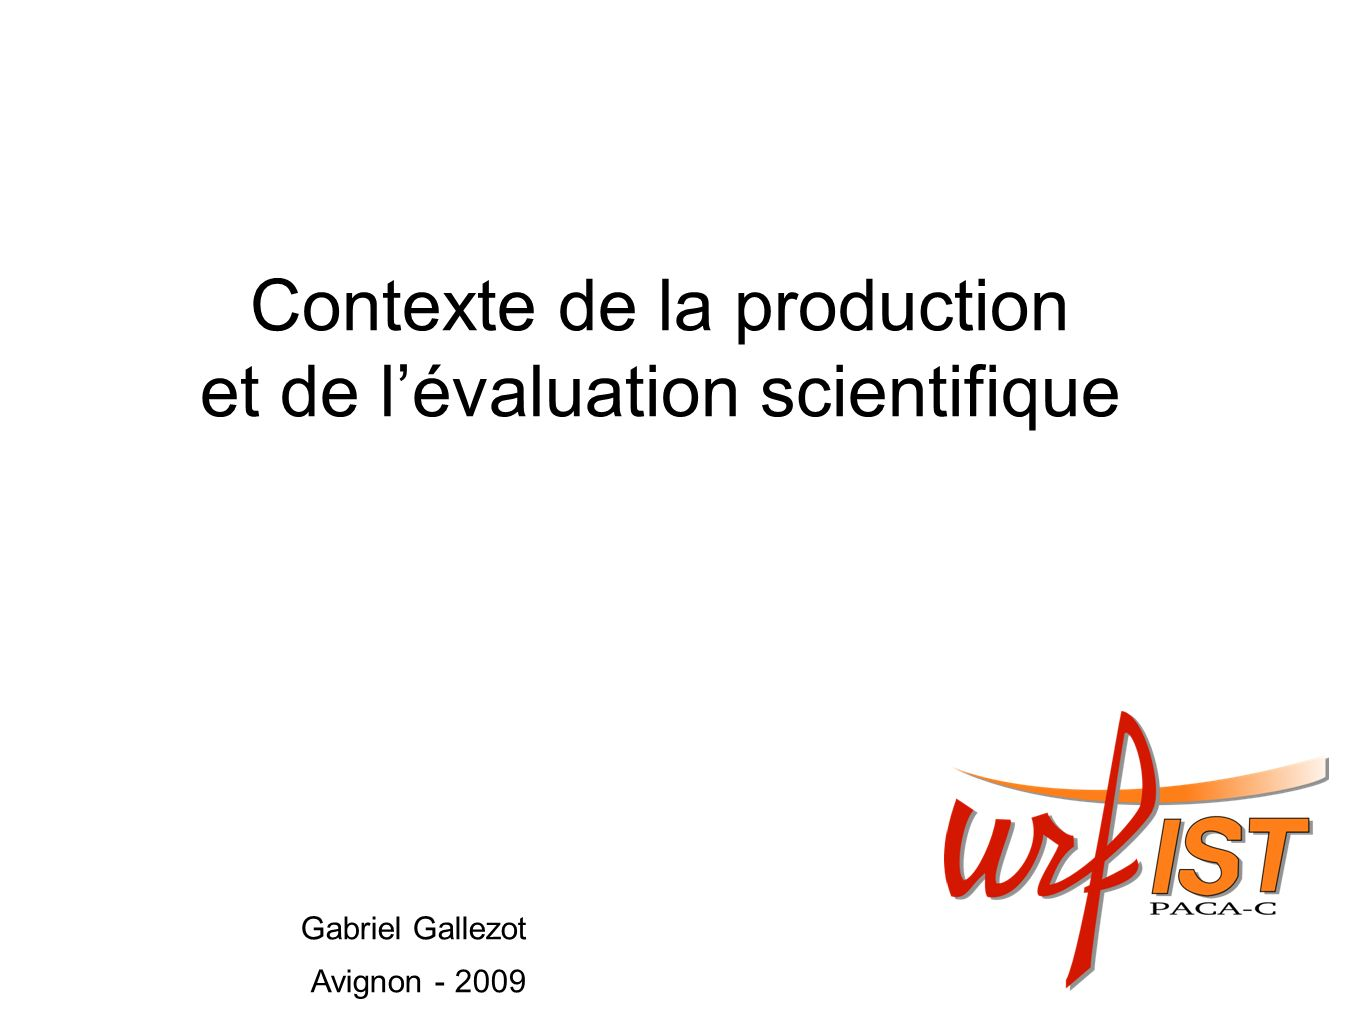 Contexte de la production et de lévaluation scientifique Gabriel Gallezot Avignon - 2009